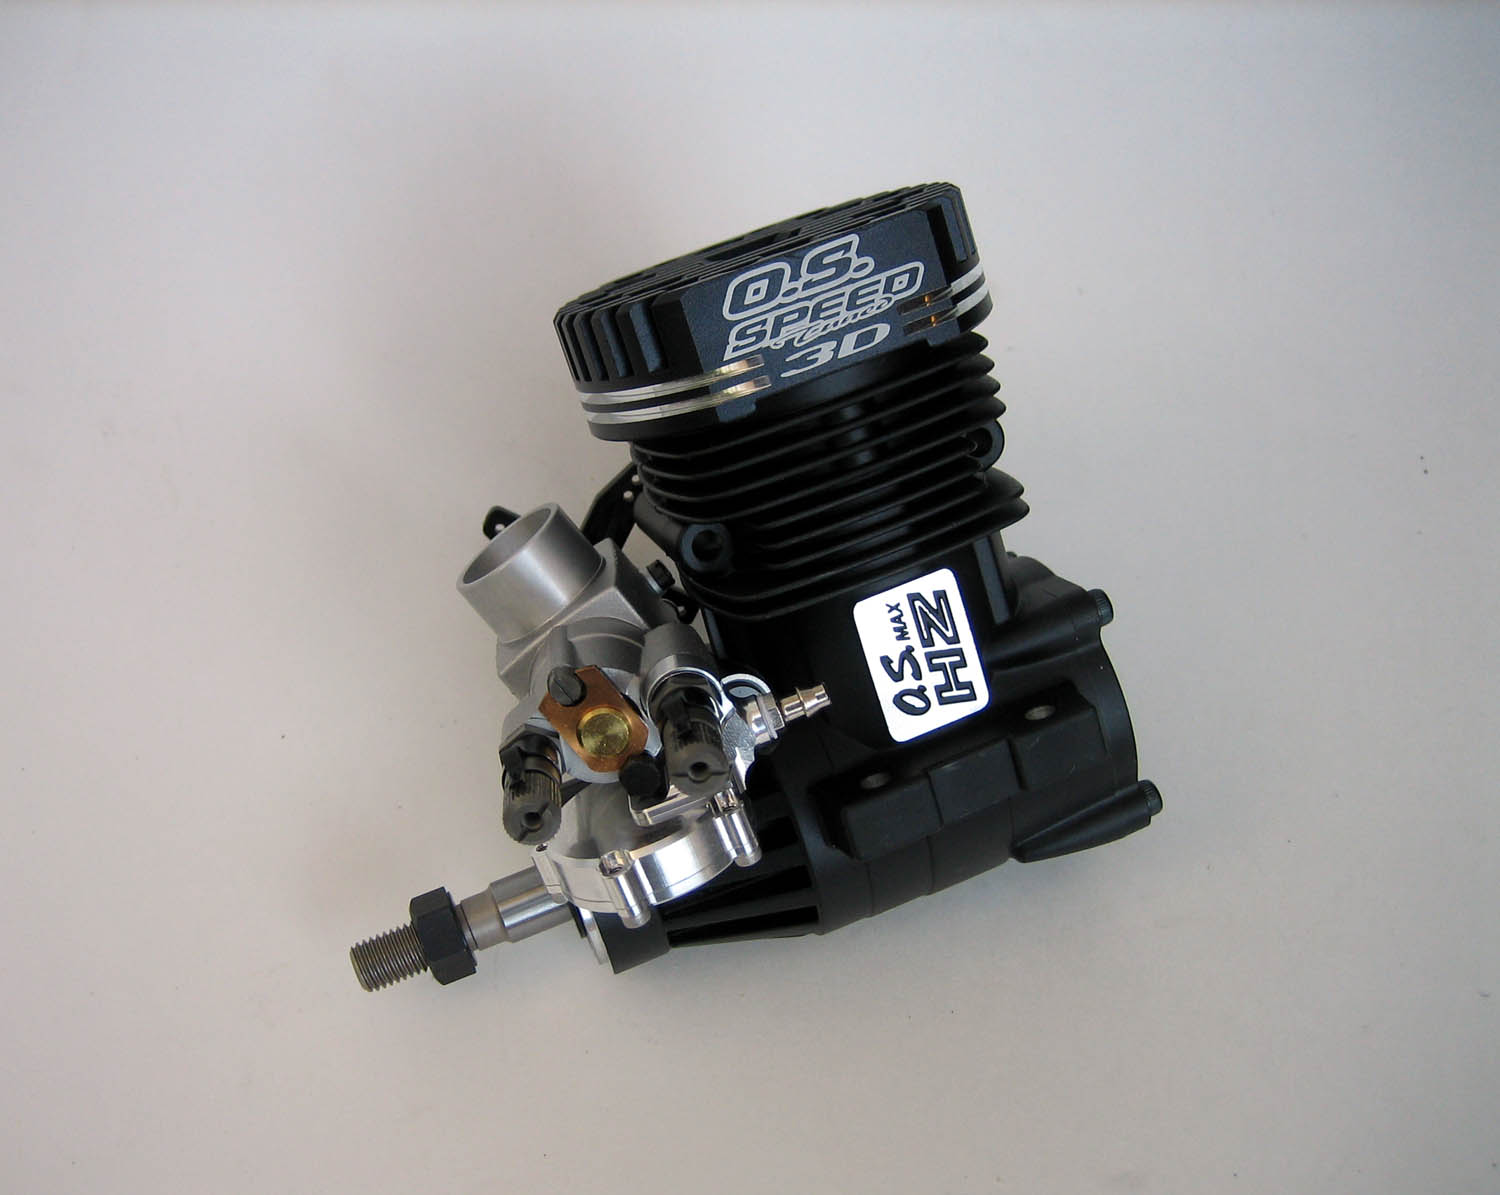 Getting to Know Your Engine – Part 2